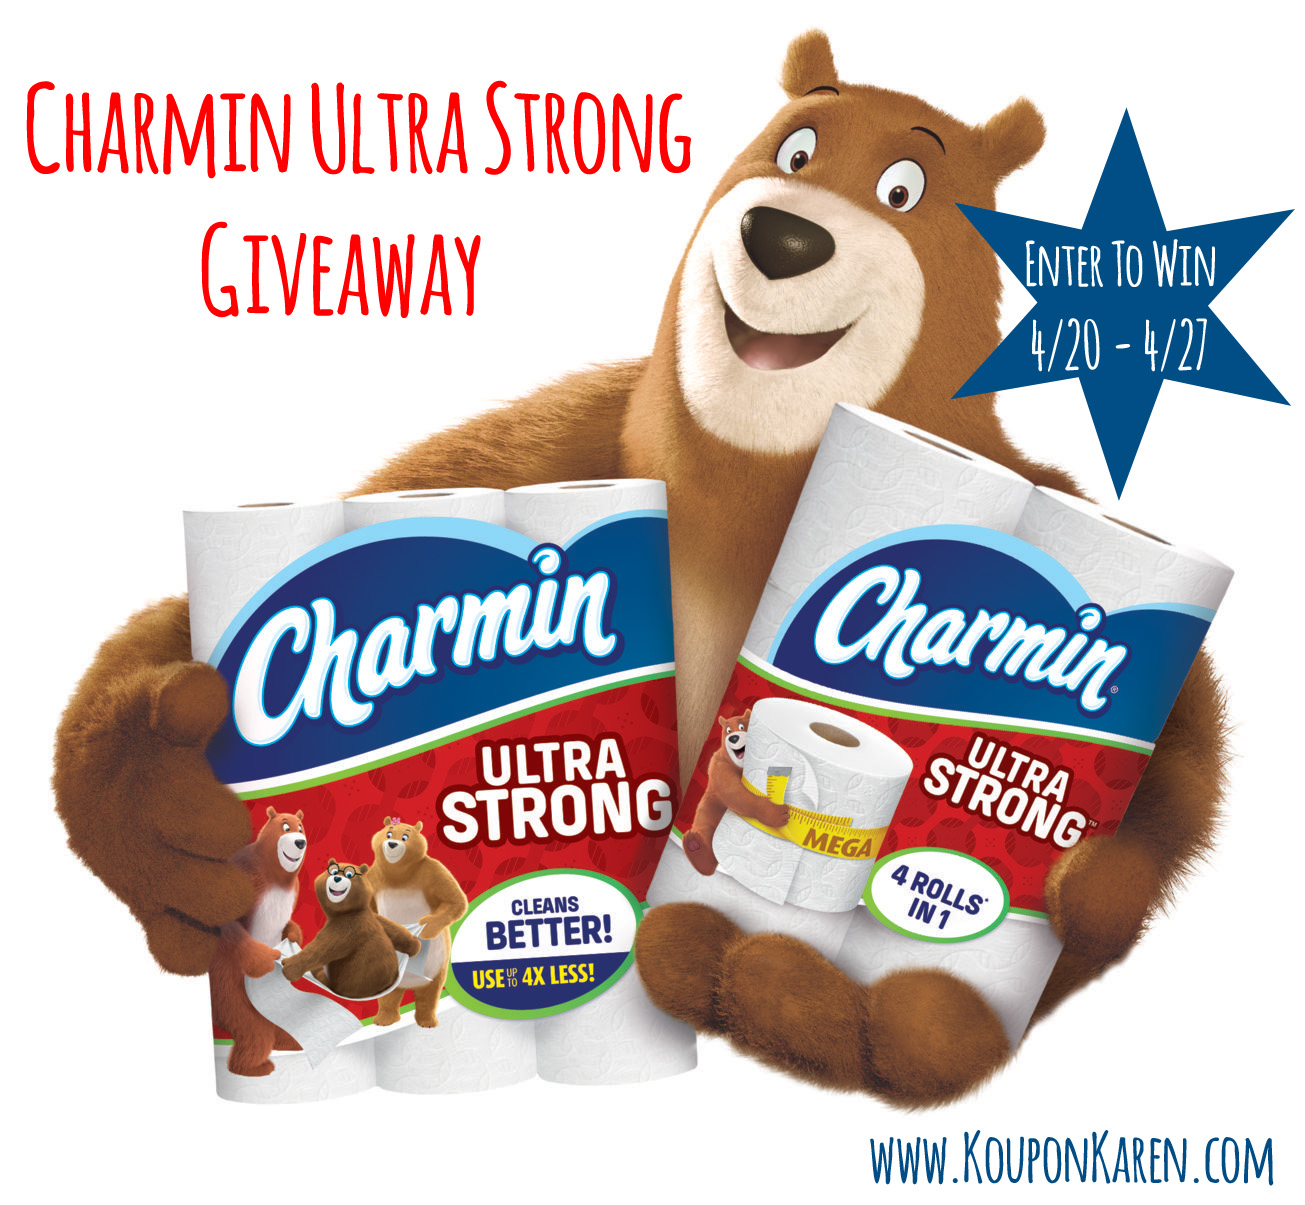 photograph regarding Charmin Coupons Printable named Higher Importance Charmin Printable Coupon